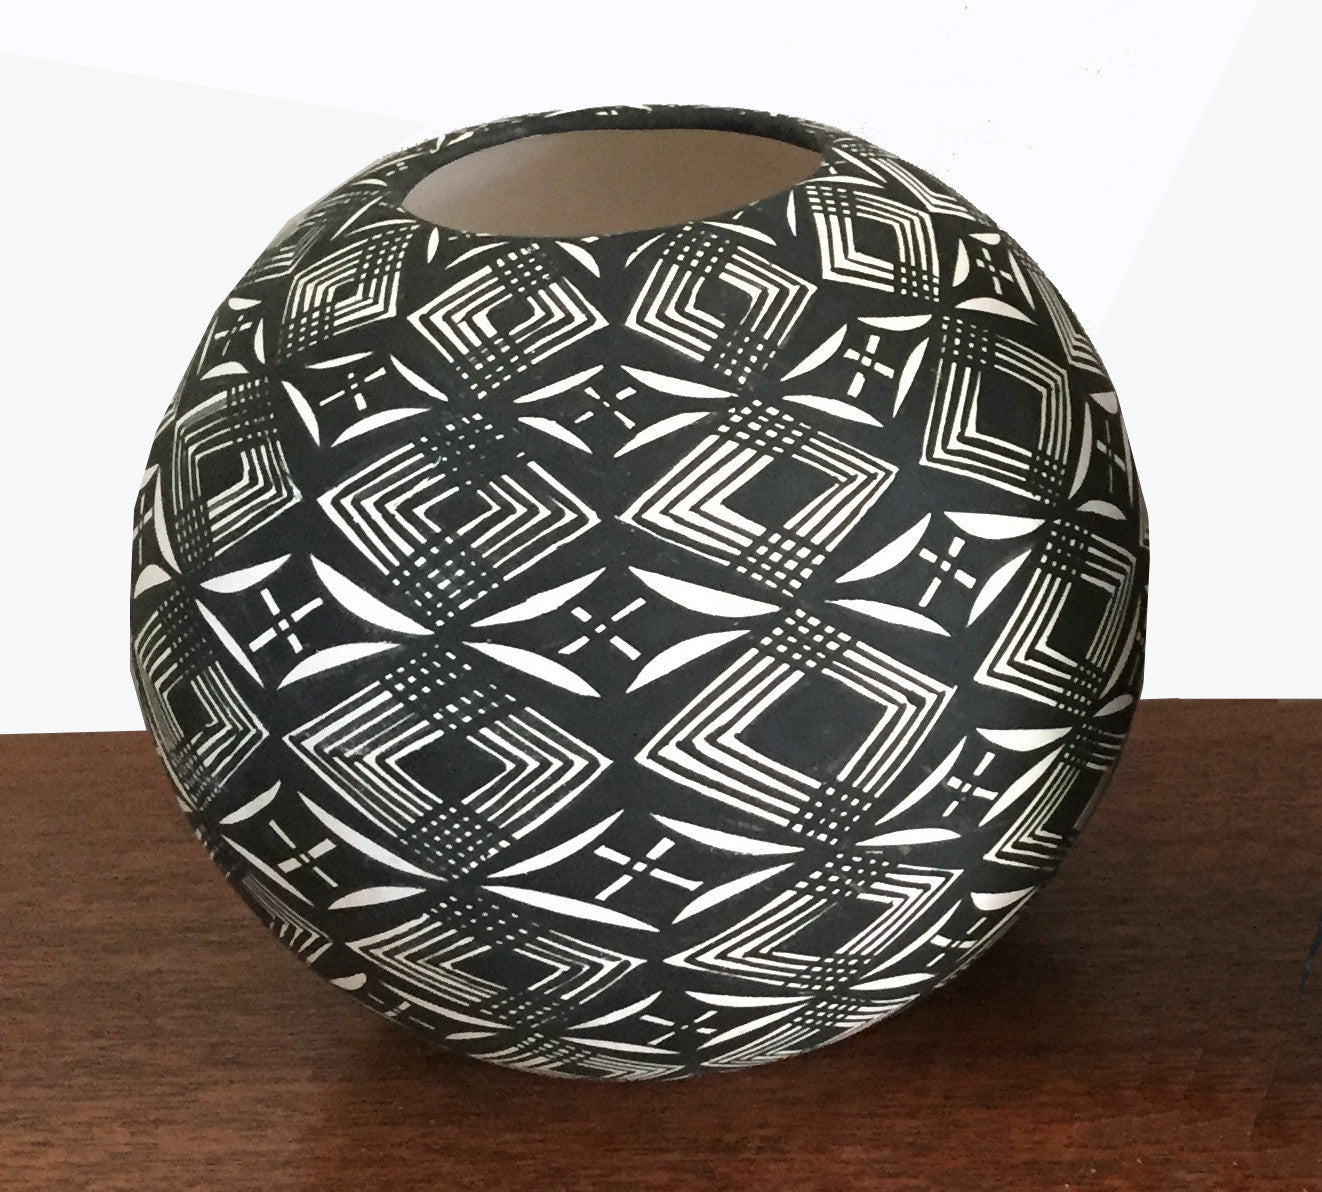 SOLD Graphic Black and White Native American Seed Pot, Acoma